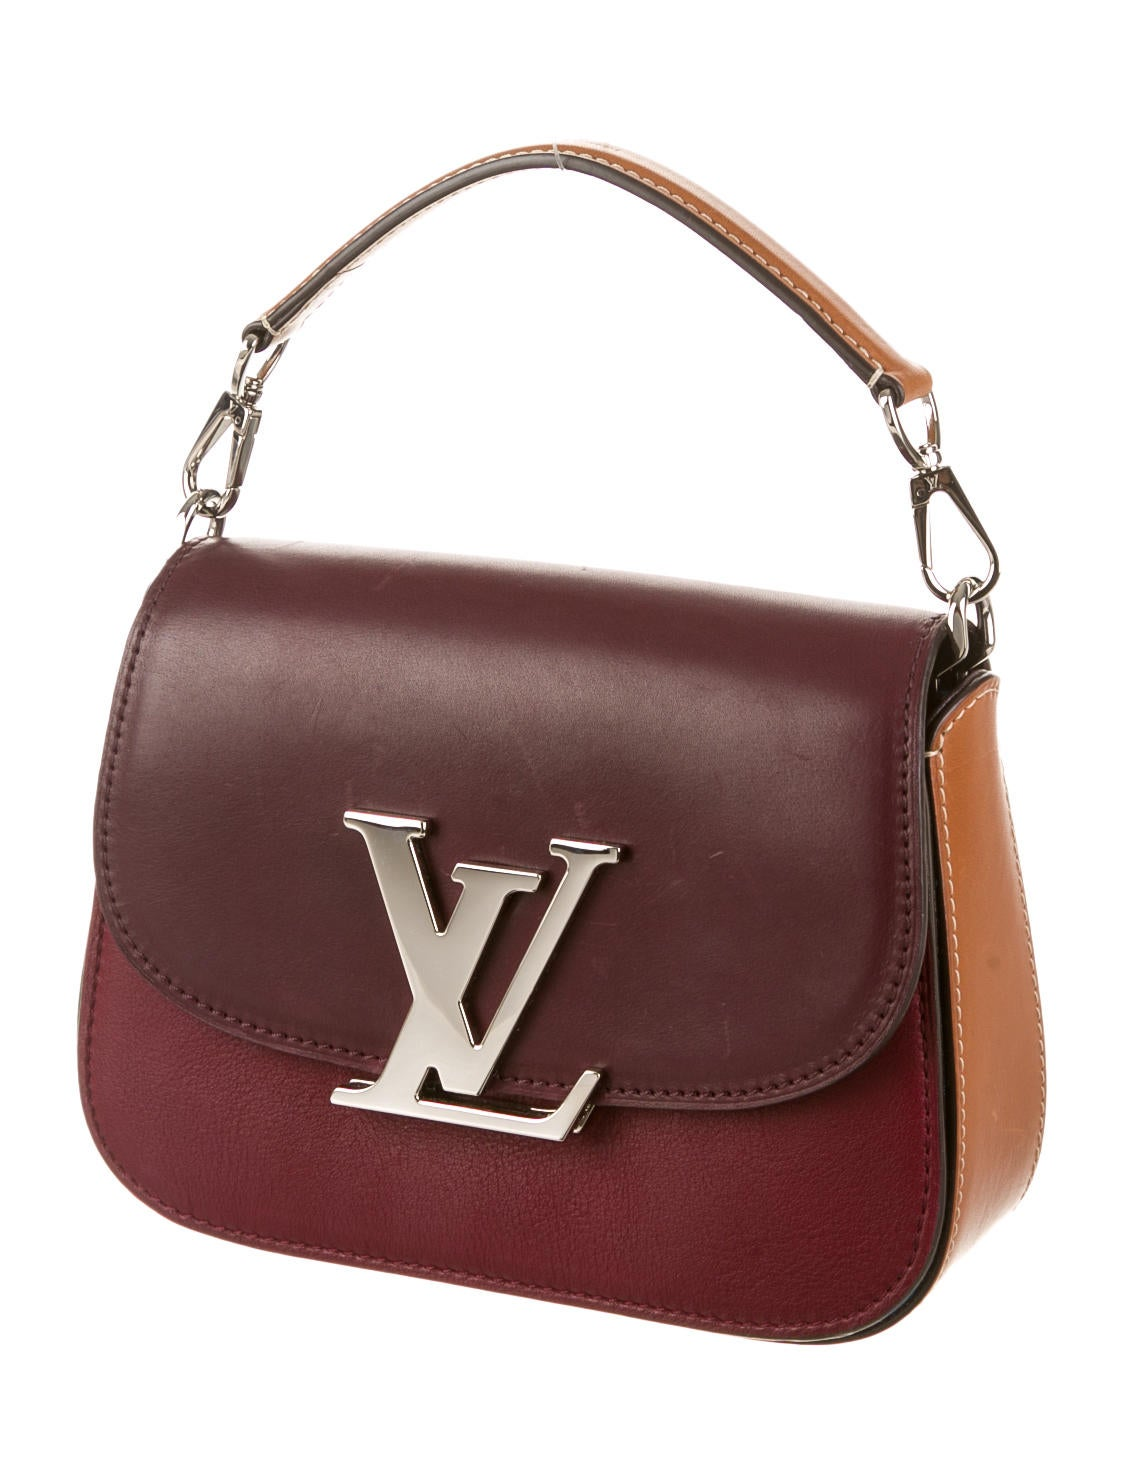 Louis Vuitton Vivienne Bag - Handbags